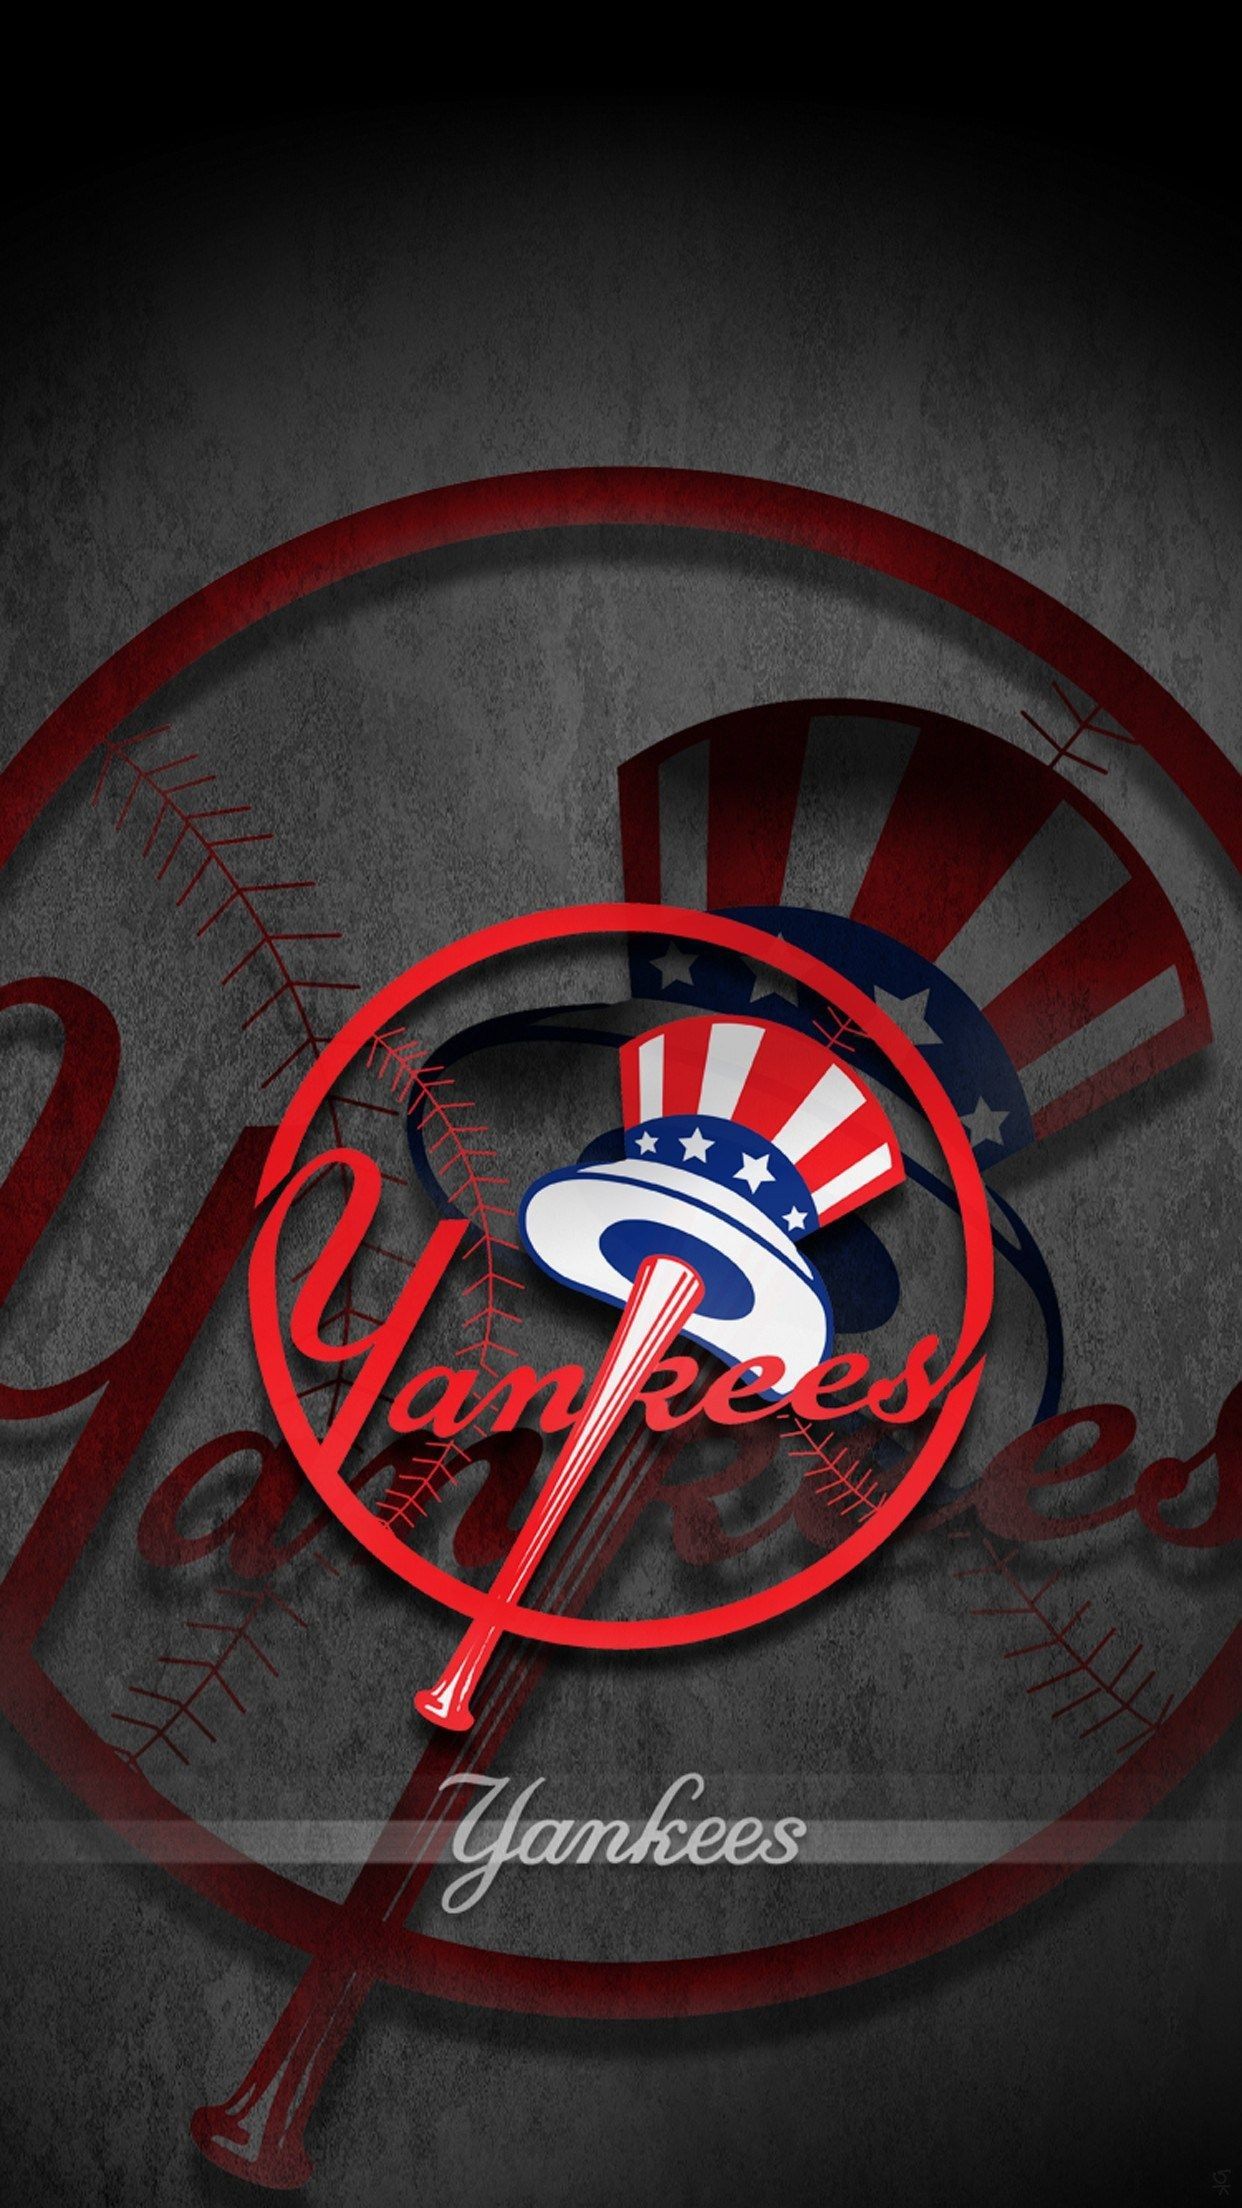 Res: 1242x2208, New York Yankees Wallpaper iPhone - Beautiful New York Yankees Wallpaper  iPhone, Ny Yankees Logo Wallpapers Wallpaper Cave